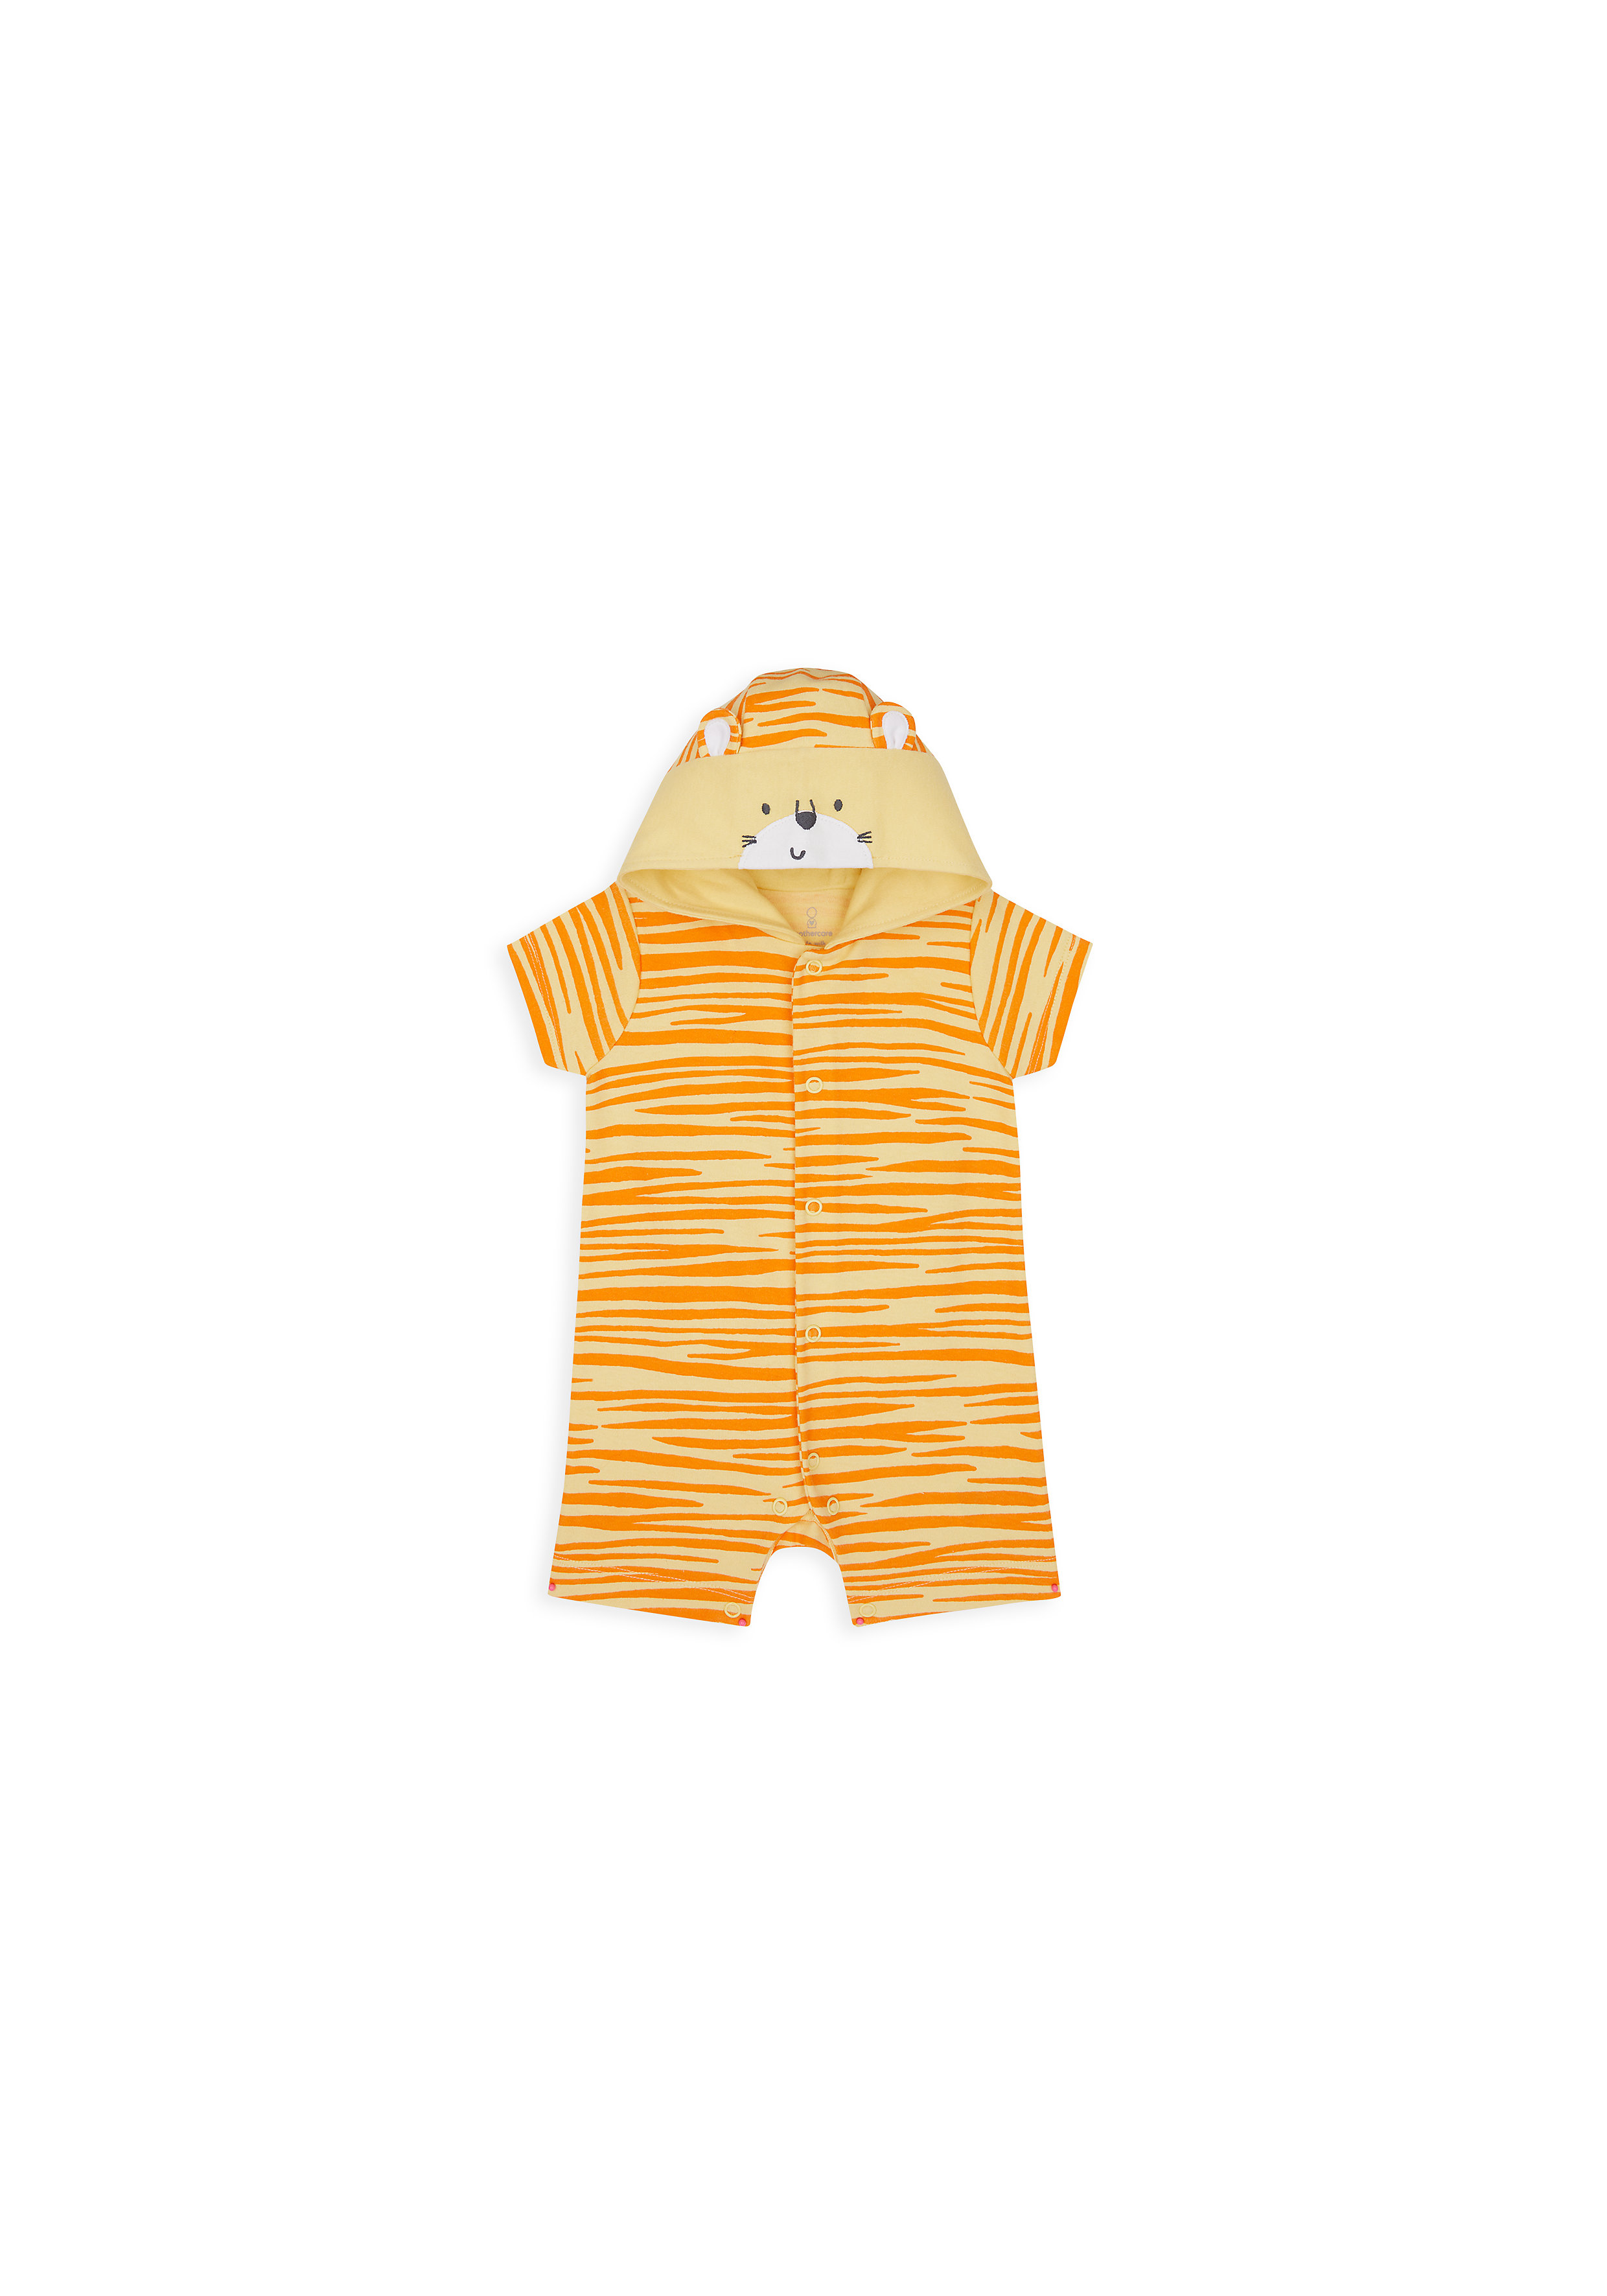 Mothercare | Unisex Half Sleeves Romper 3D Details - Yellow